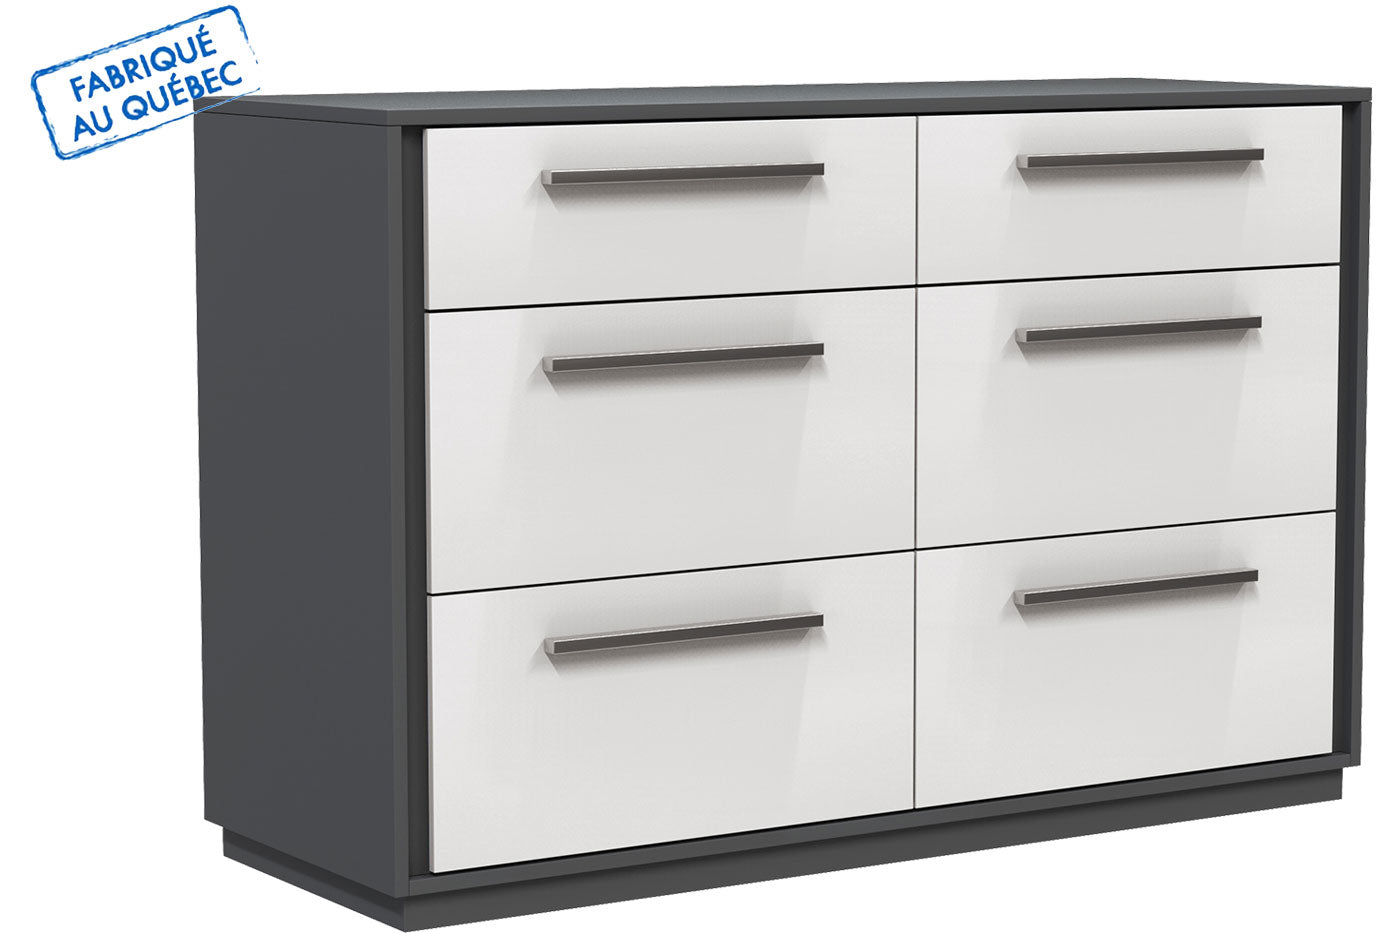 ANSON DOUBLE DESK 6 DRAWERS - DARK GRAY AND WHITE